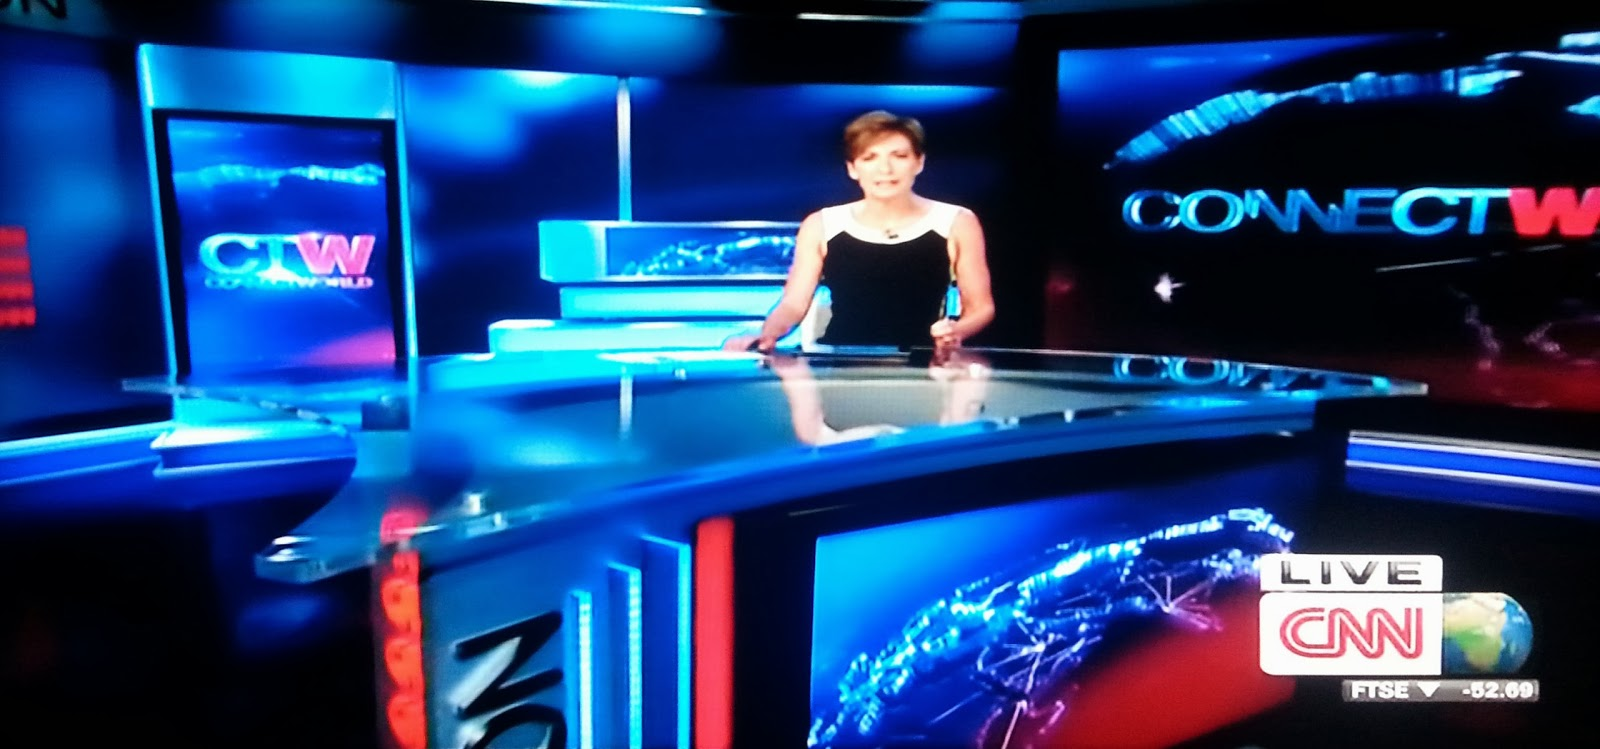 The Ger Desk In Cnn S Studio London Replaces Small Round And Is Wedged Shaped Like A Guitar Pick Or Yes Starfleet Insignia